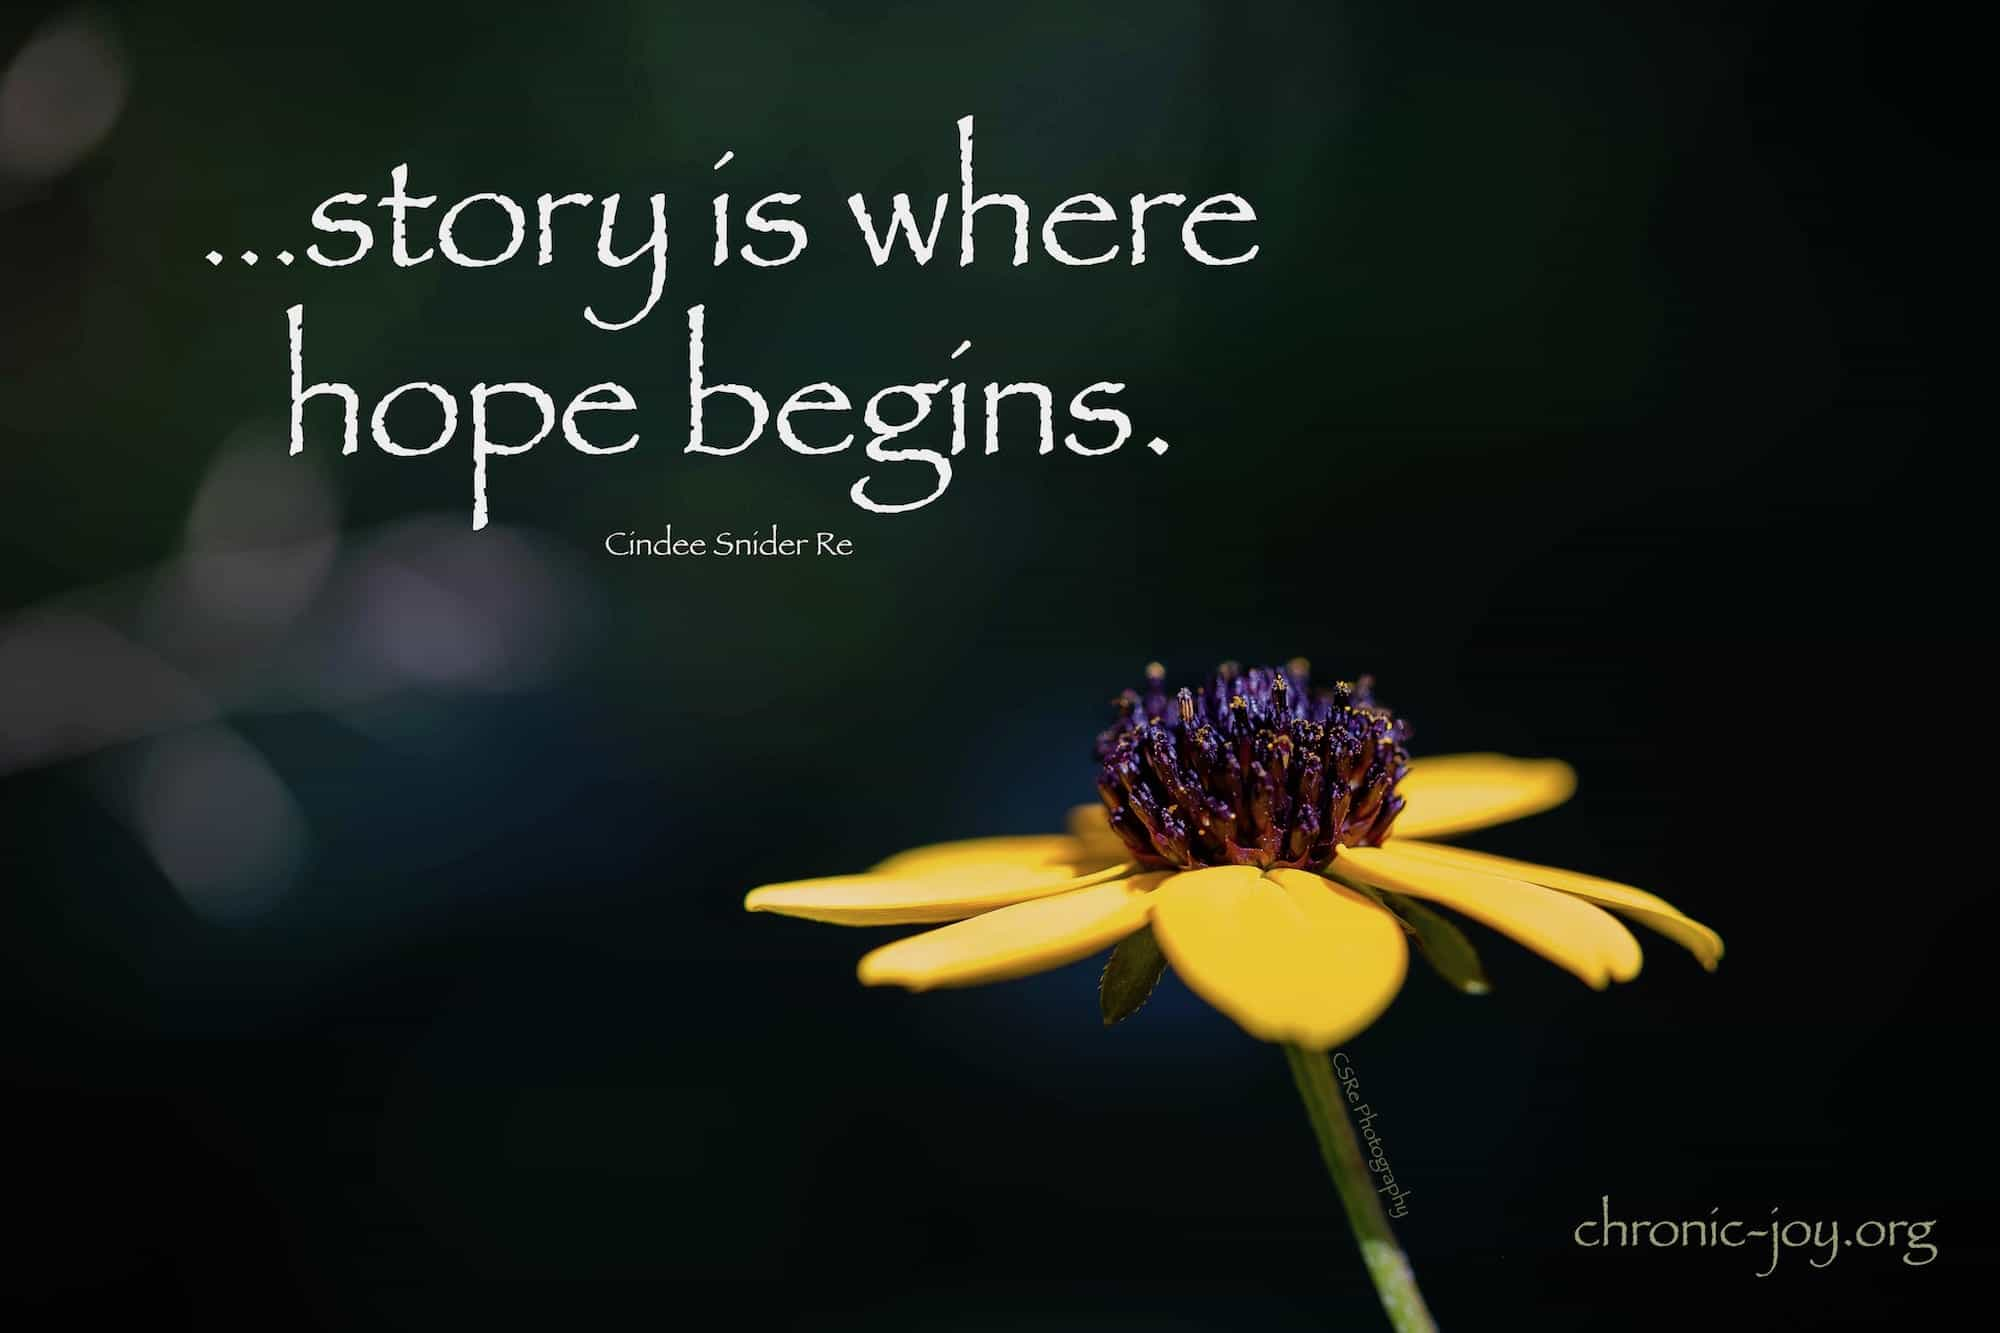 ...story is where hope begins.